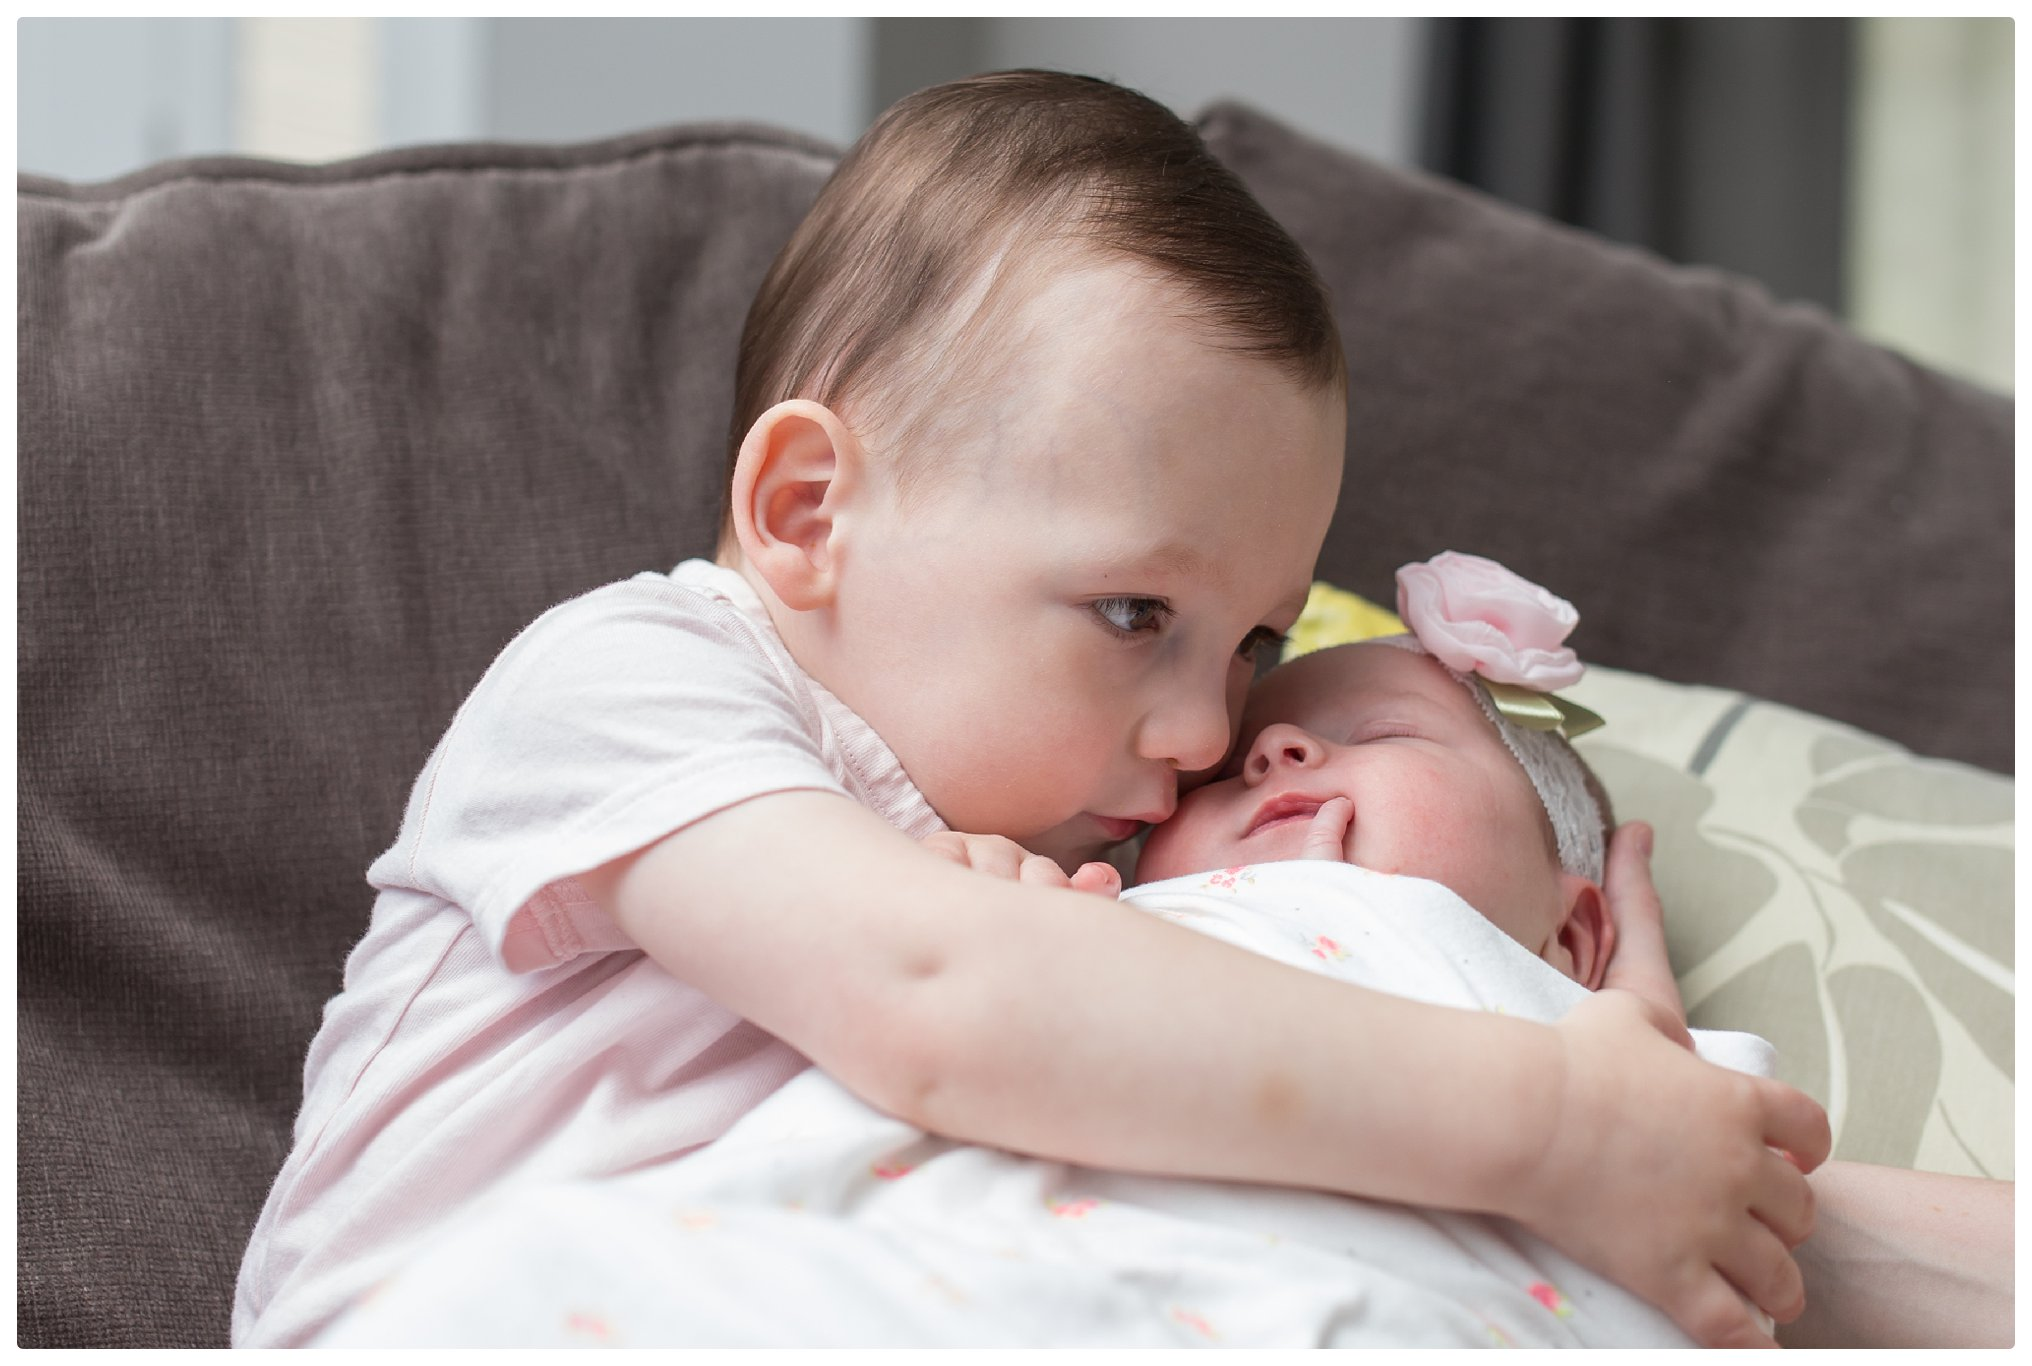 Big brother snuggles little baby sister during a Newborn Lifestyle photo captured by a Boston Newborn Photographer in Massachusetts.